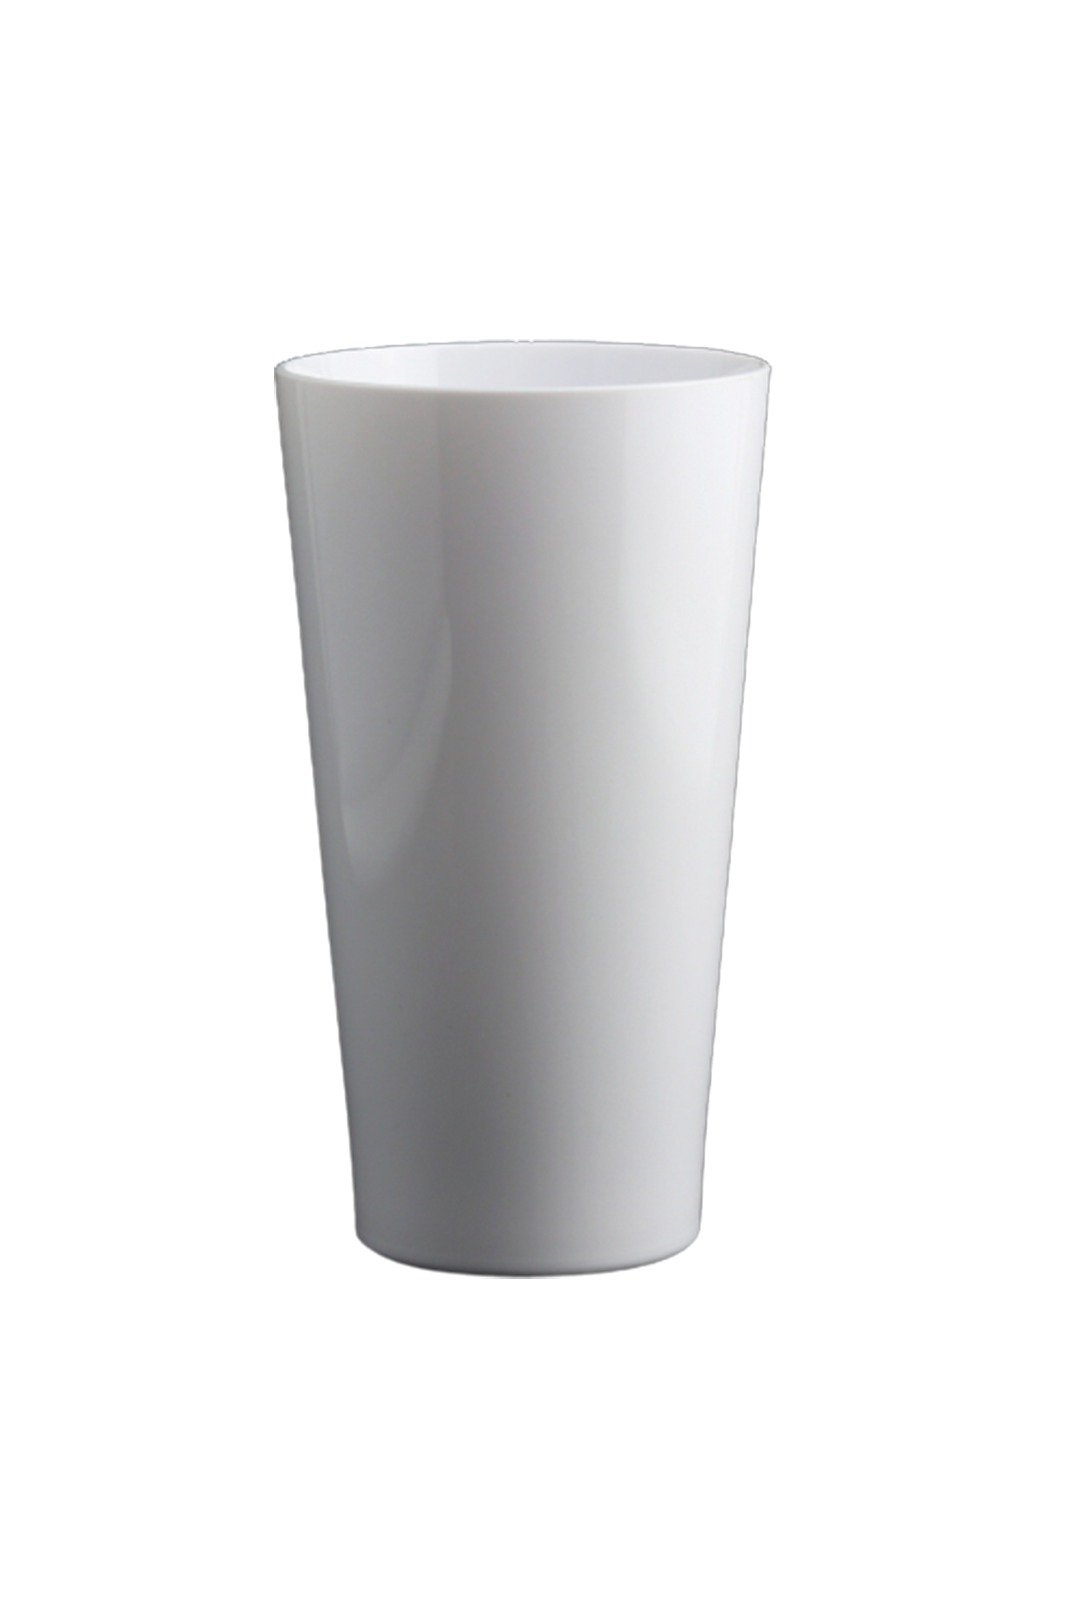 16 oz. White Pint Glass